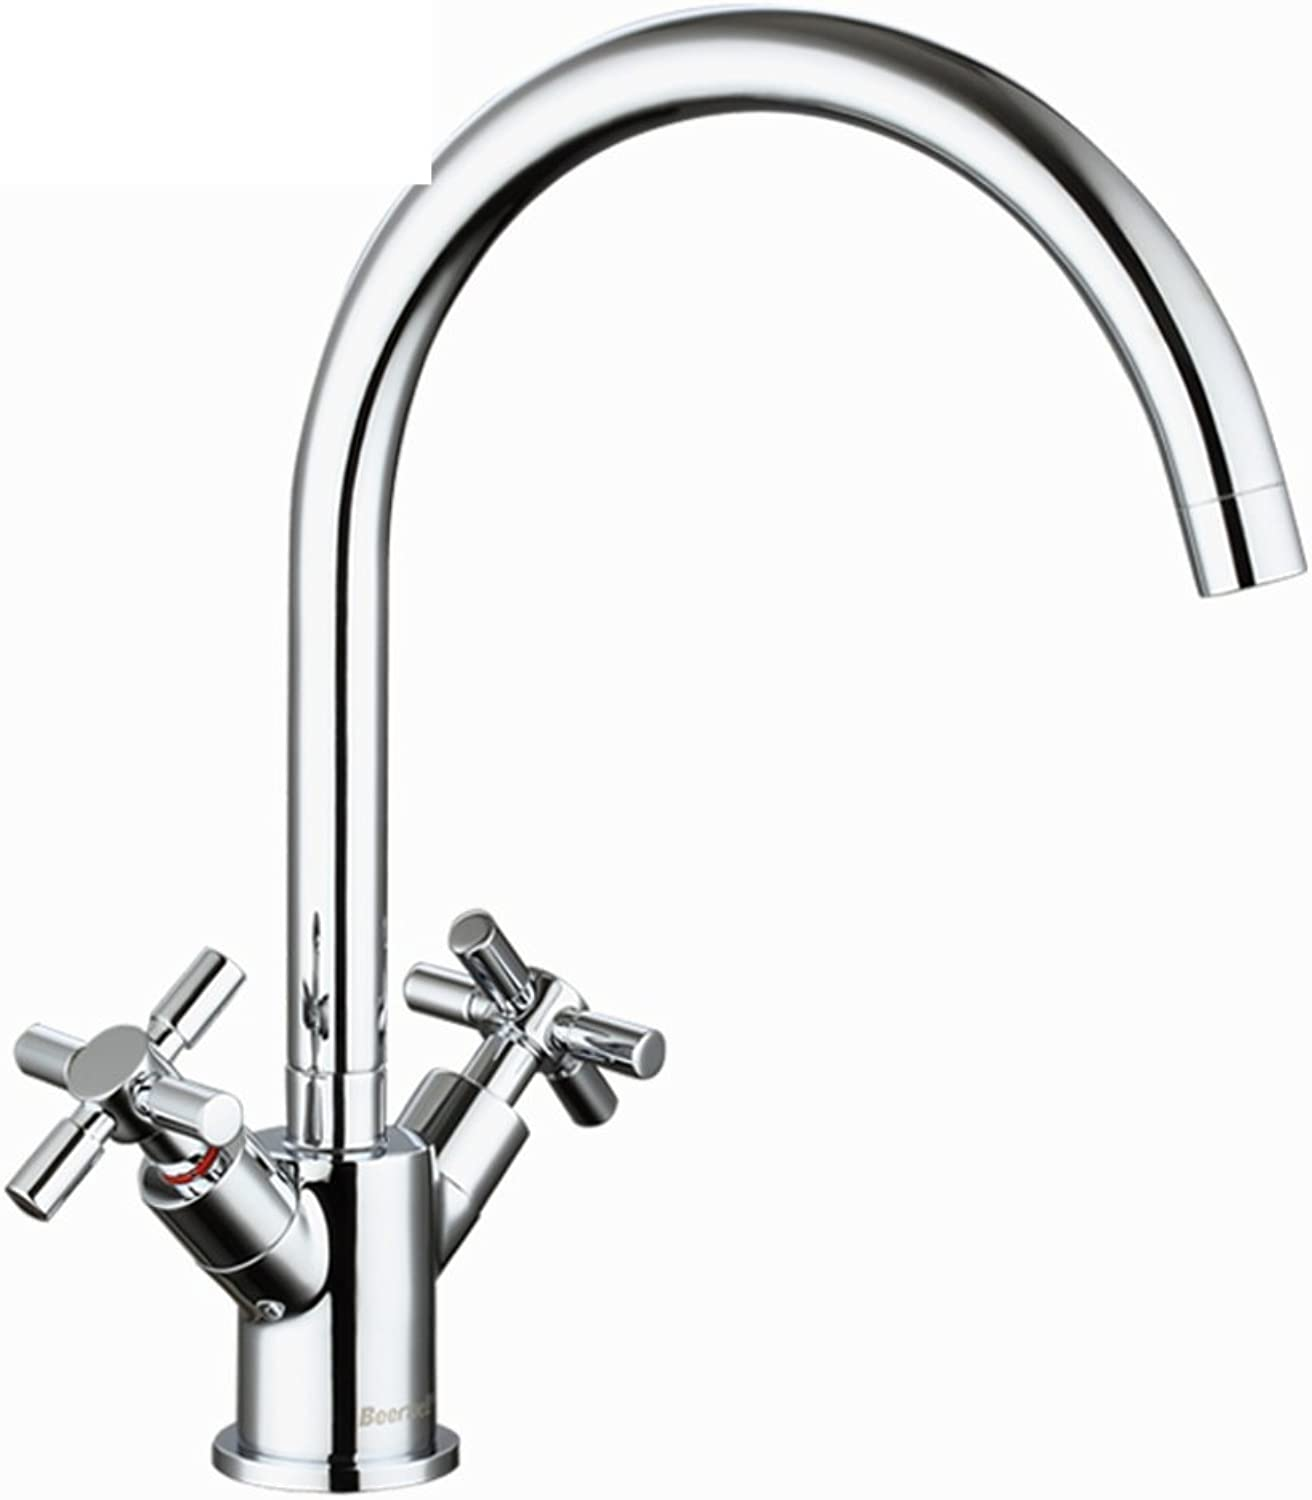 ZHF Kitchen faucet hot and cold Vegetables basin faucet Sink faucet redary swivel